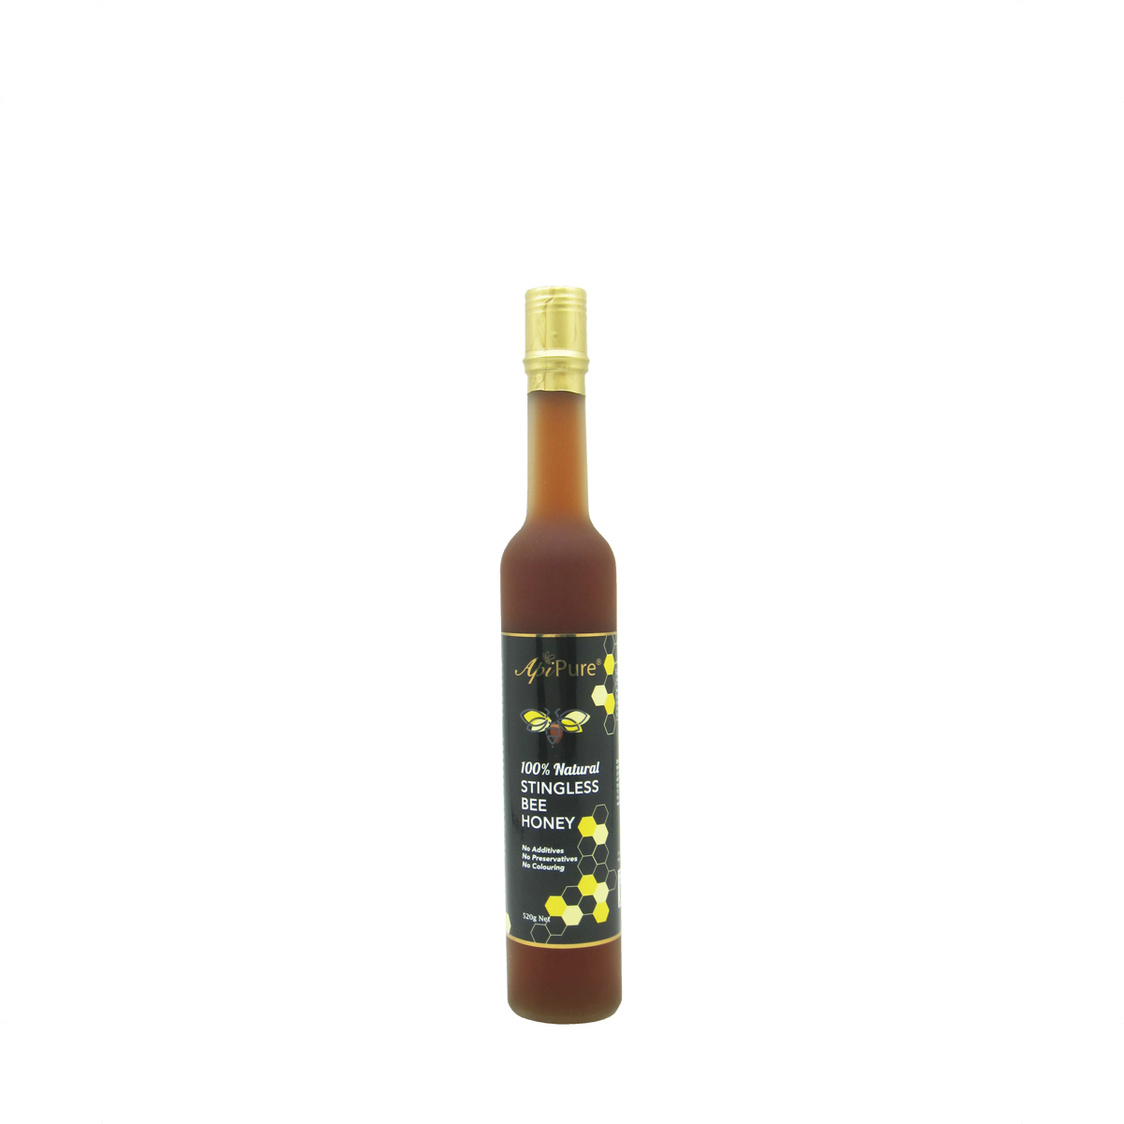 Apipure Stingless Bee Honey 520g